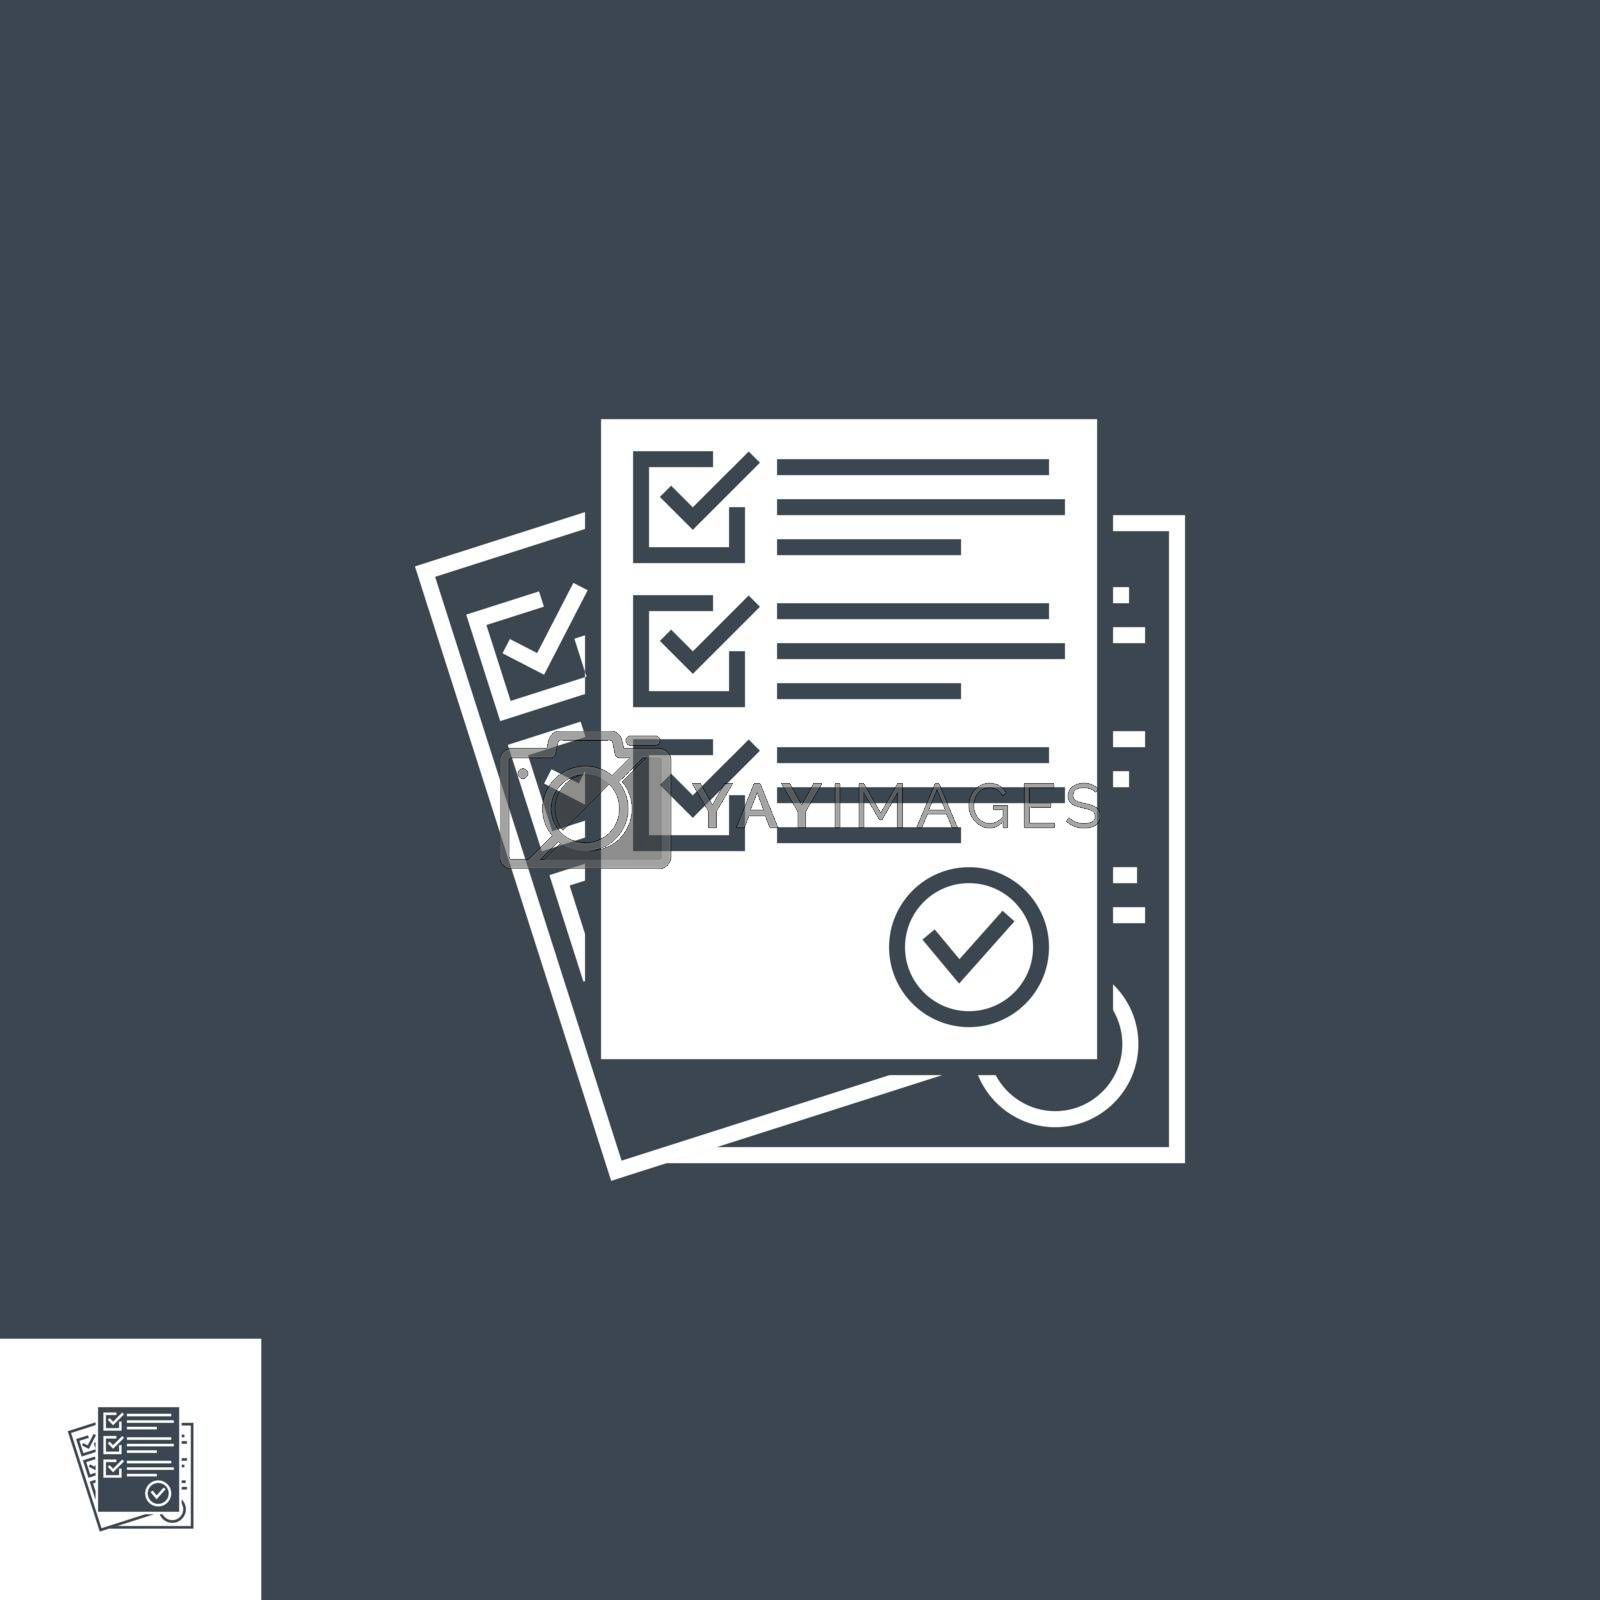 Questionnaire related vector glyph icon. Isolated on black background. Vector illustration.